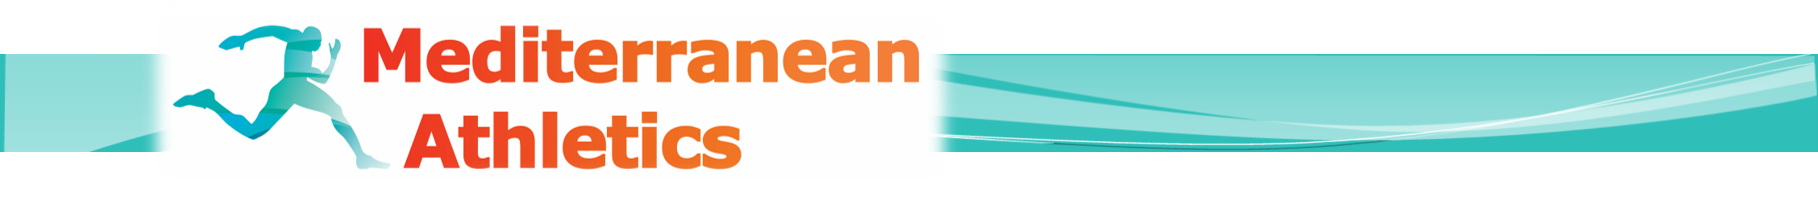 Mediterranean Athletics Logo